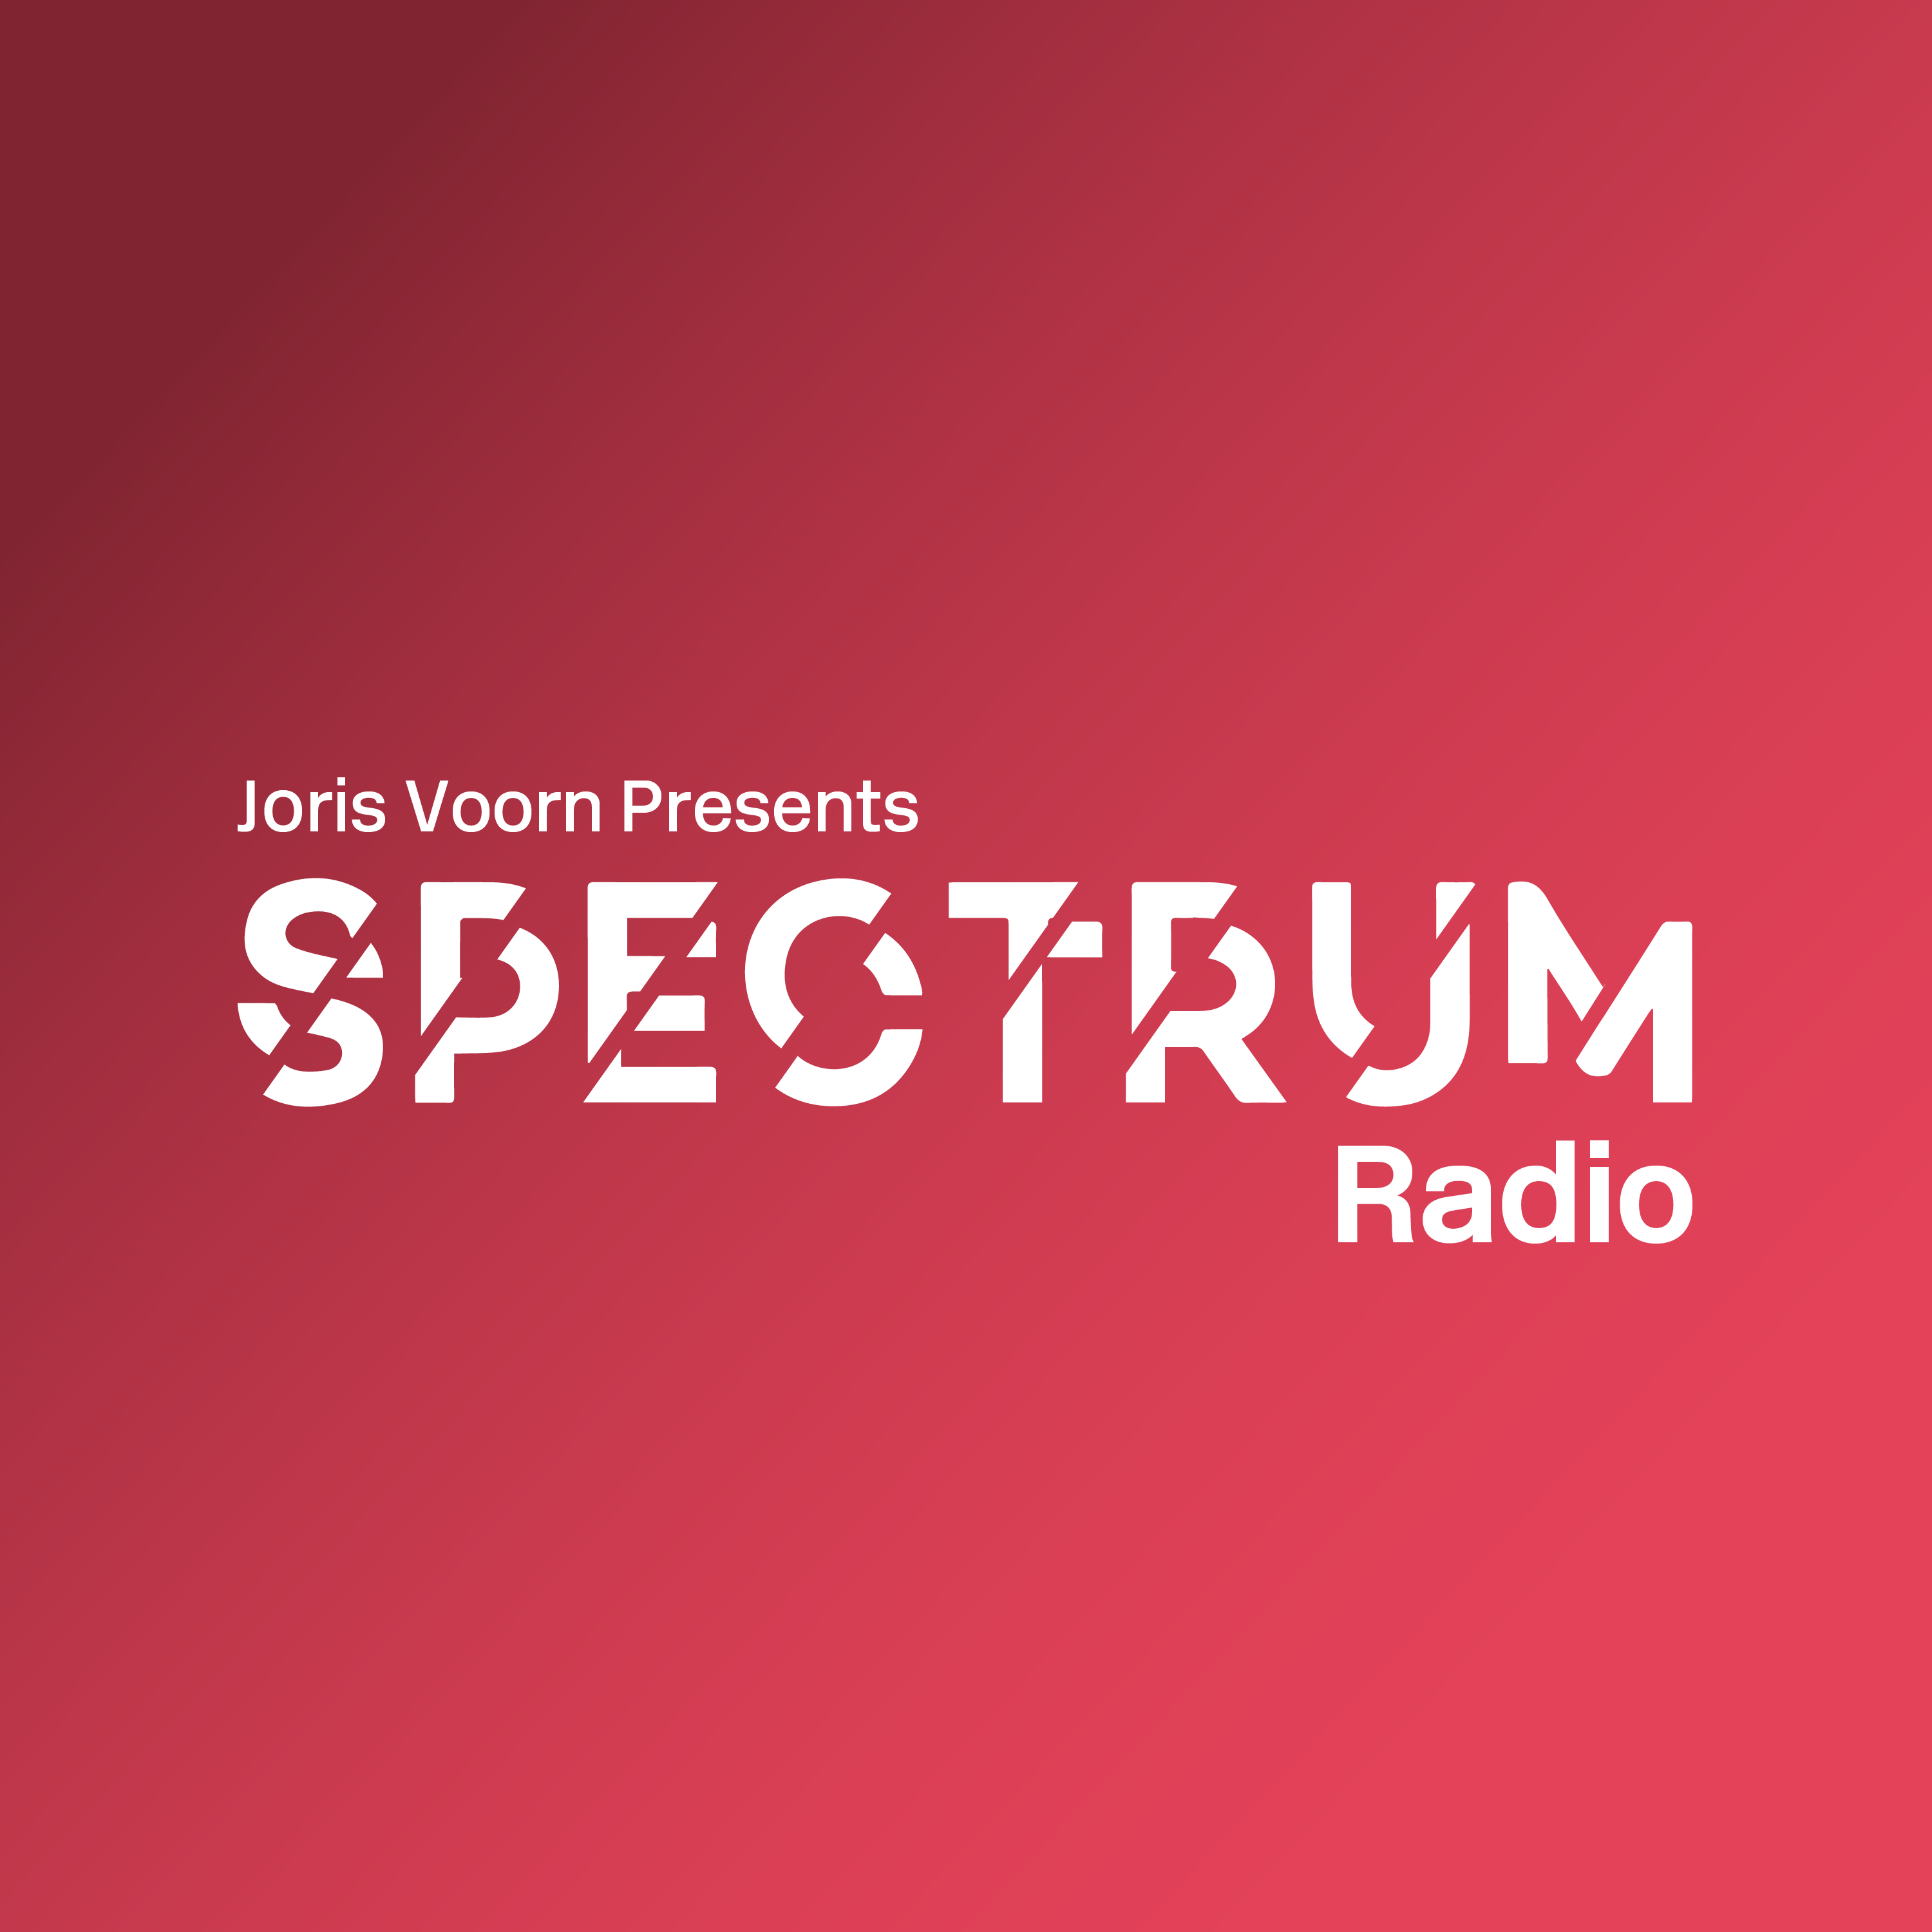 Delta Podcasts - Joris Voorn Presents Spectrum Radio(22.10.2017)